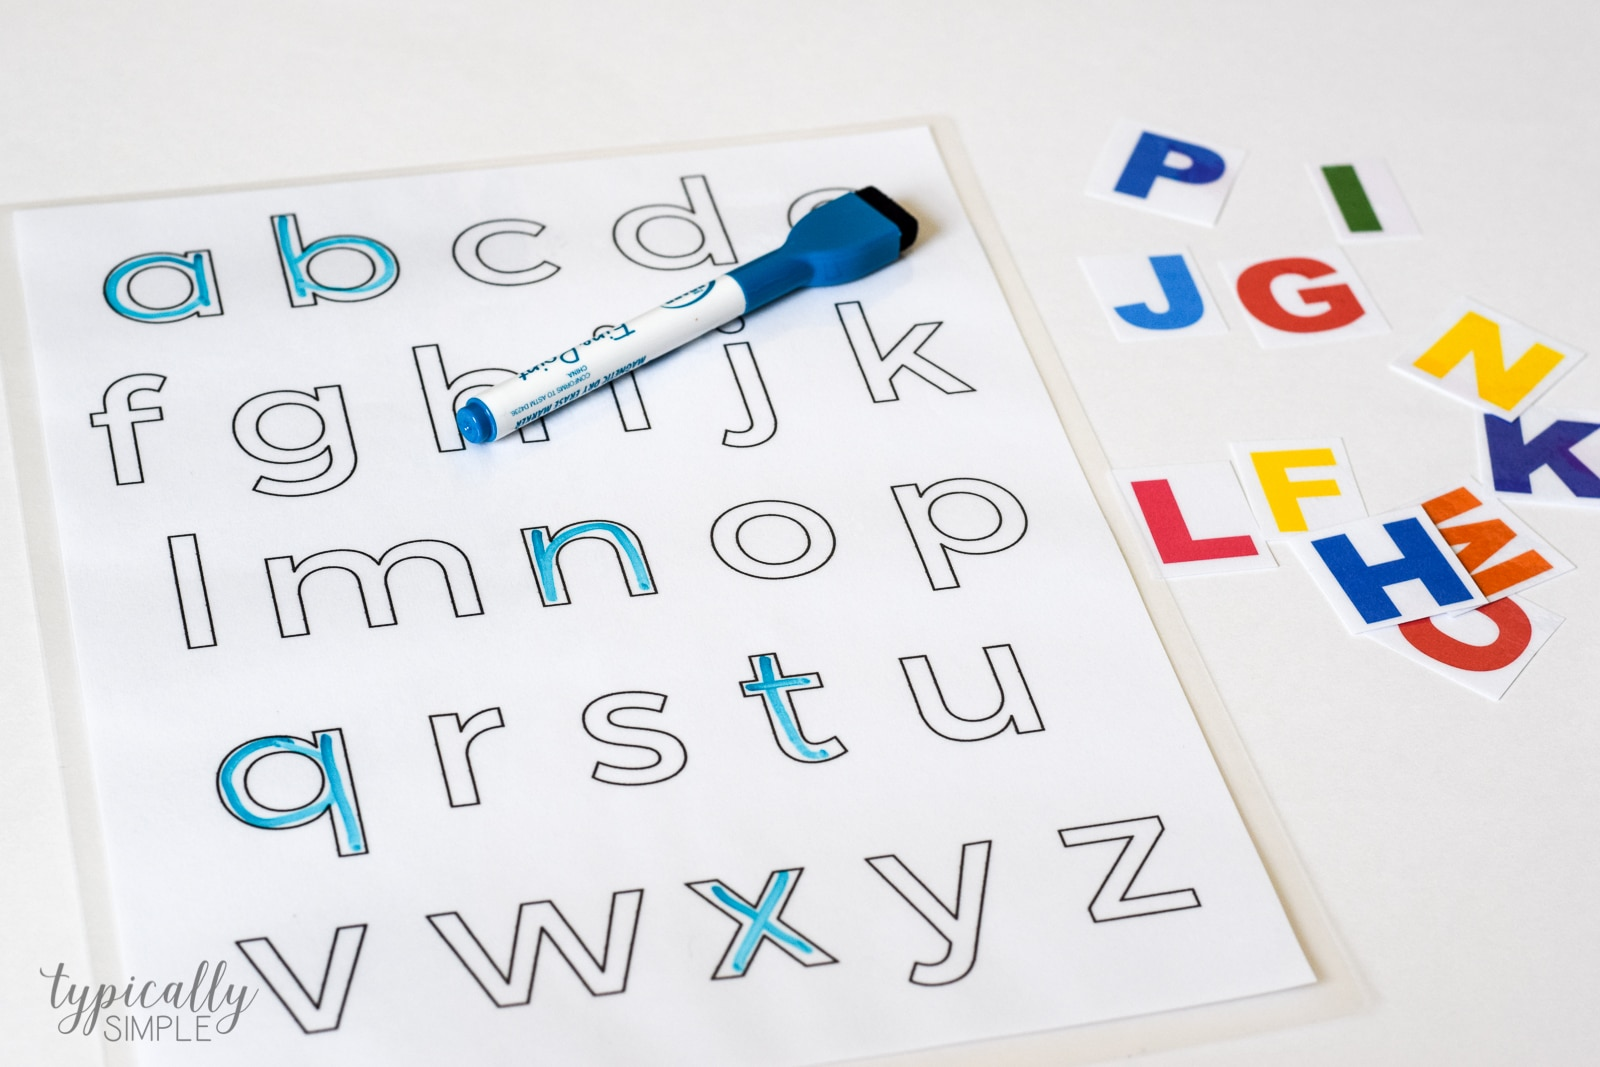 What Is Uppercase Letter And Lowercase Letter